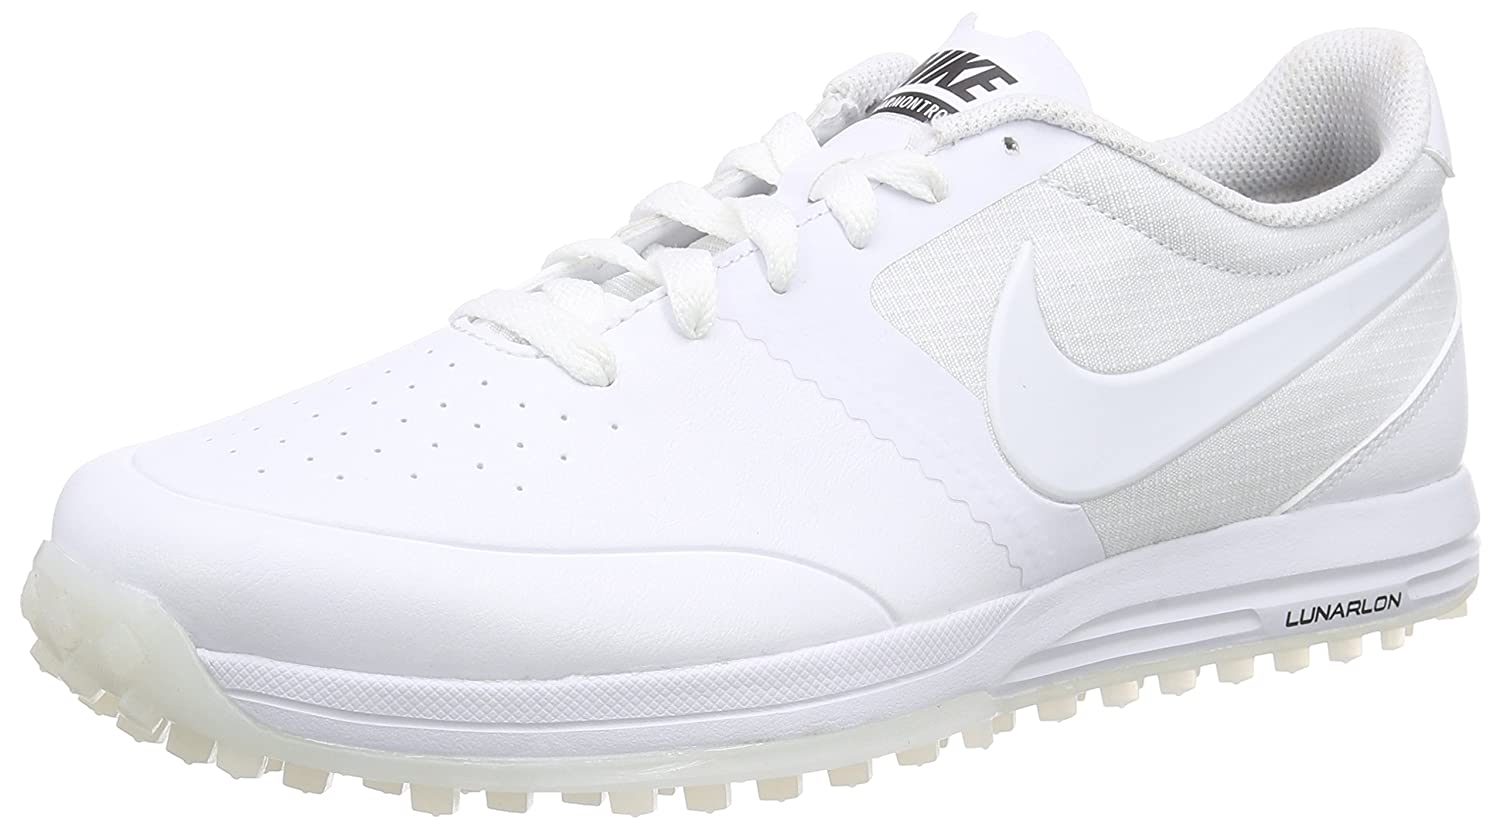 new product 5cfbe 98646 Nike Men s s Lunar Mont Royal Golf Shoes White, 6 UK  Amazon.co.uk  Shoes    Bags